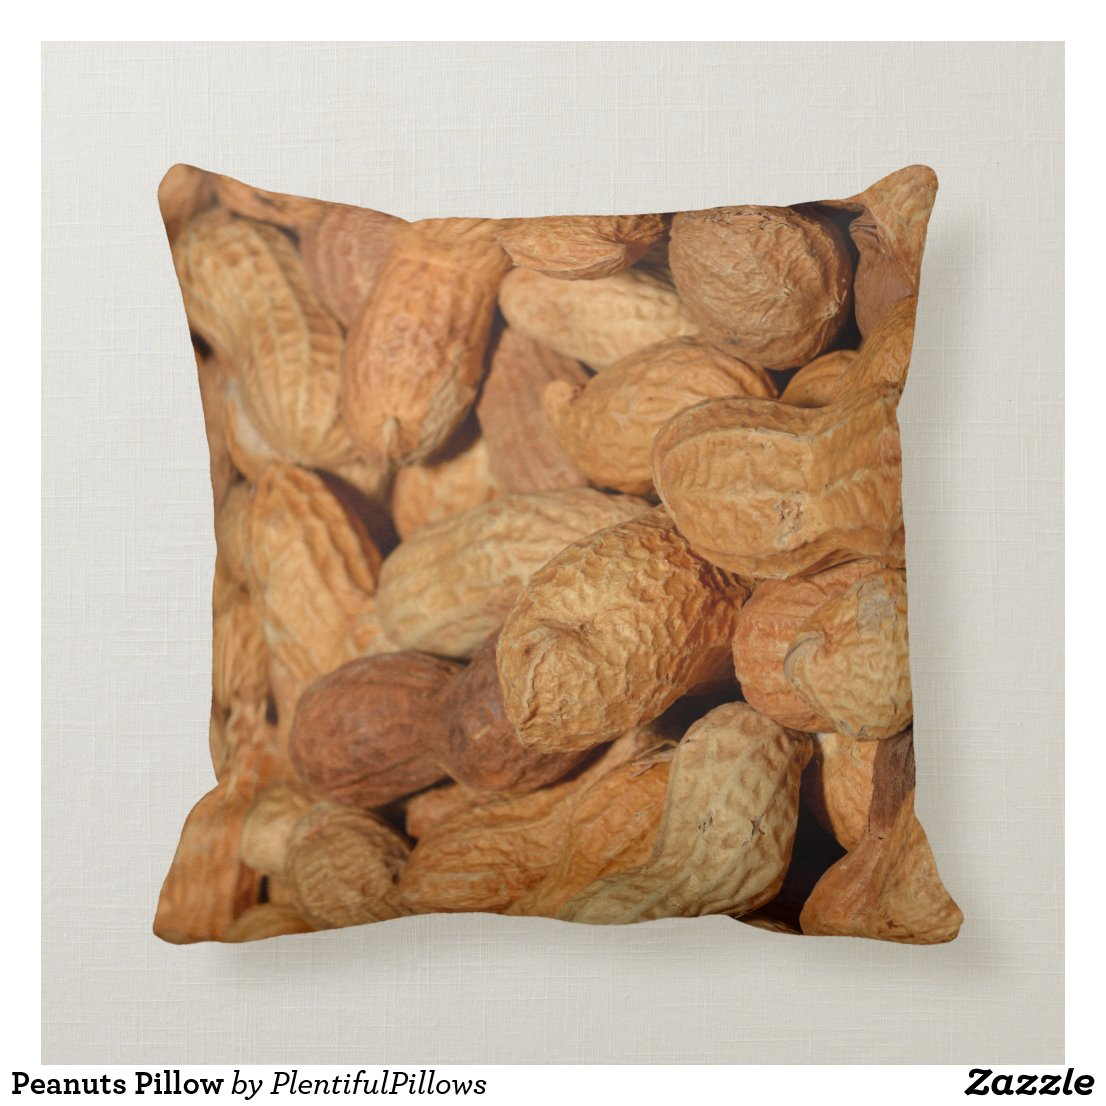 Peanuts Pillow